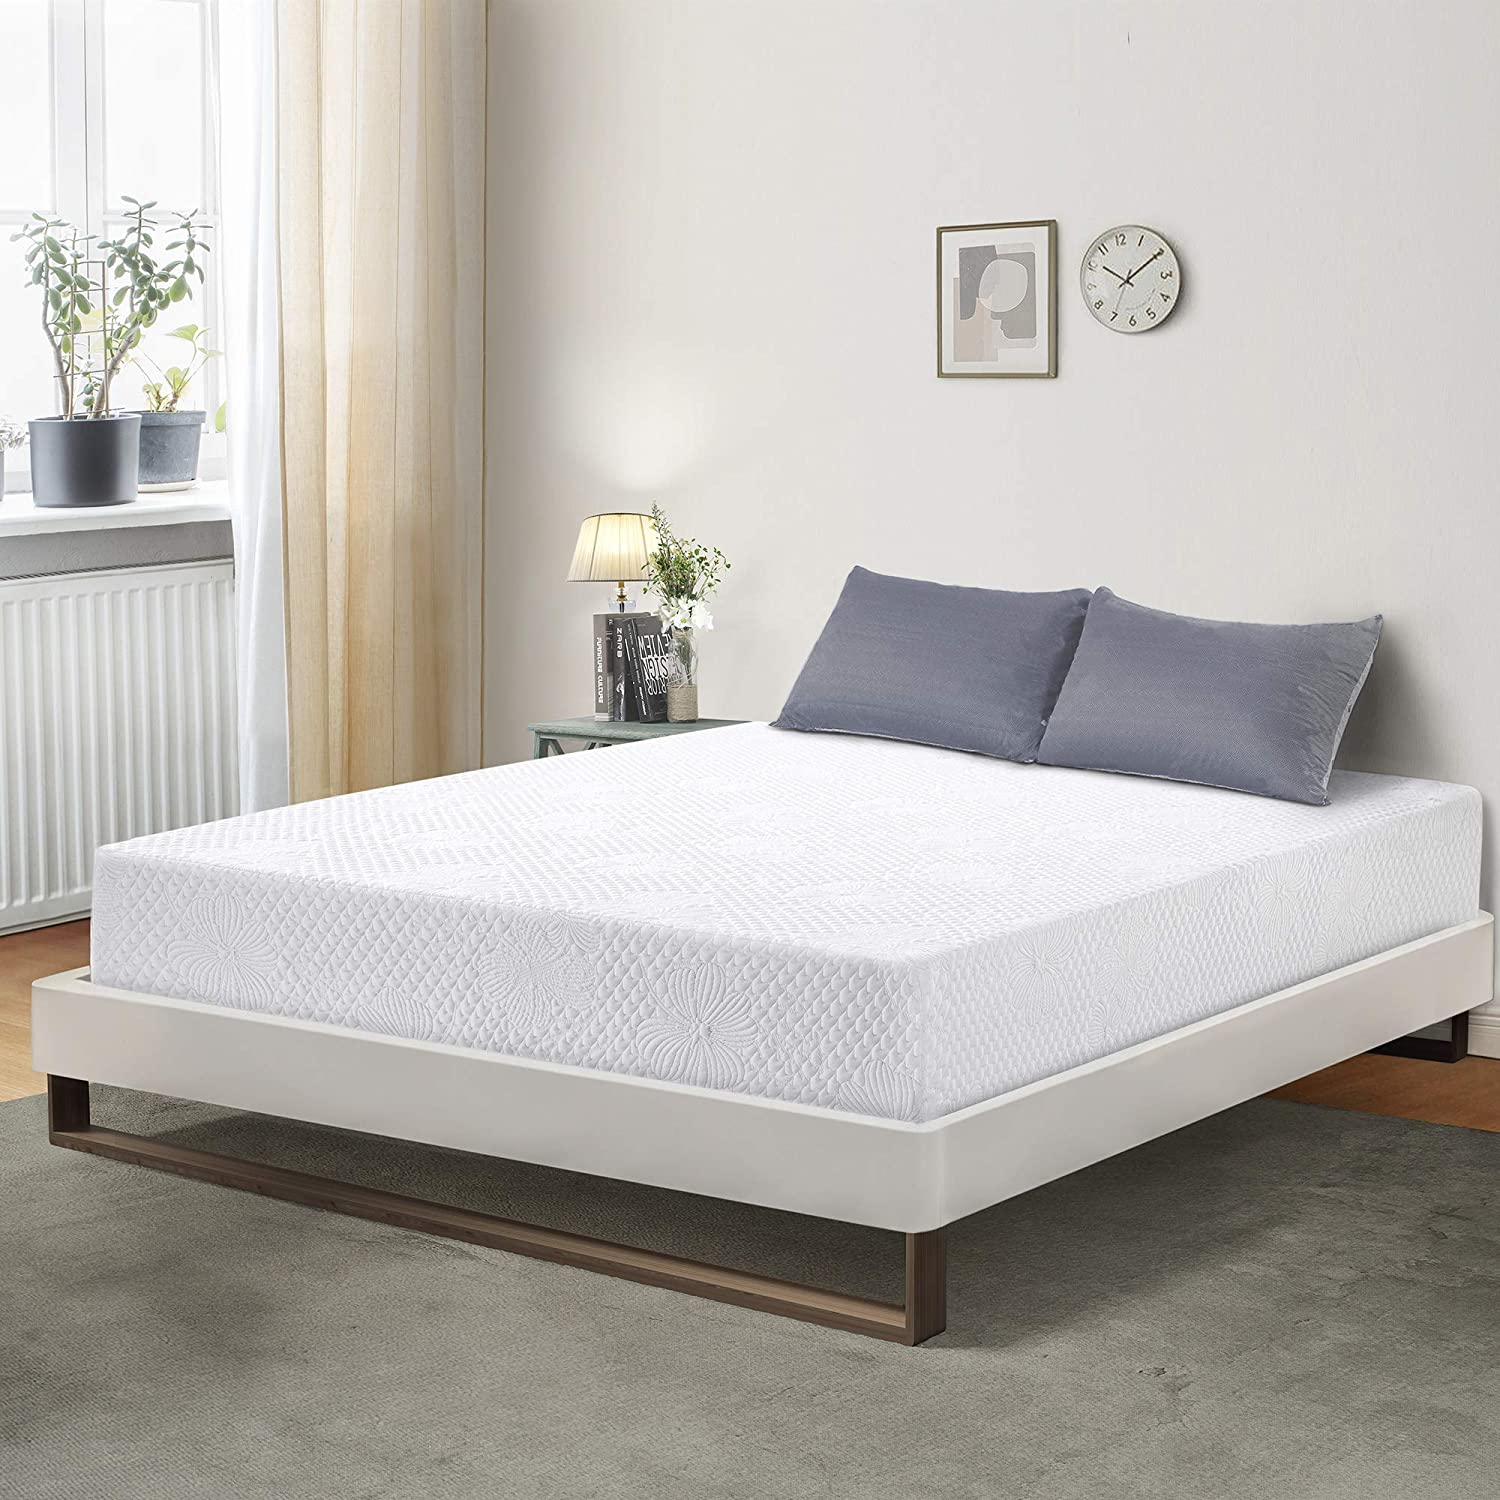 PrimaSleep PR06FM01Q Mattress, Queen, White